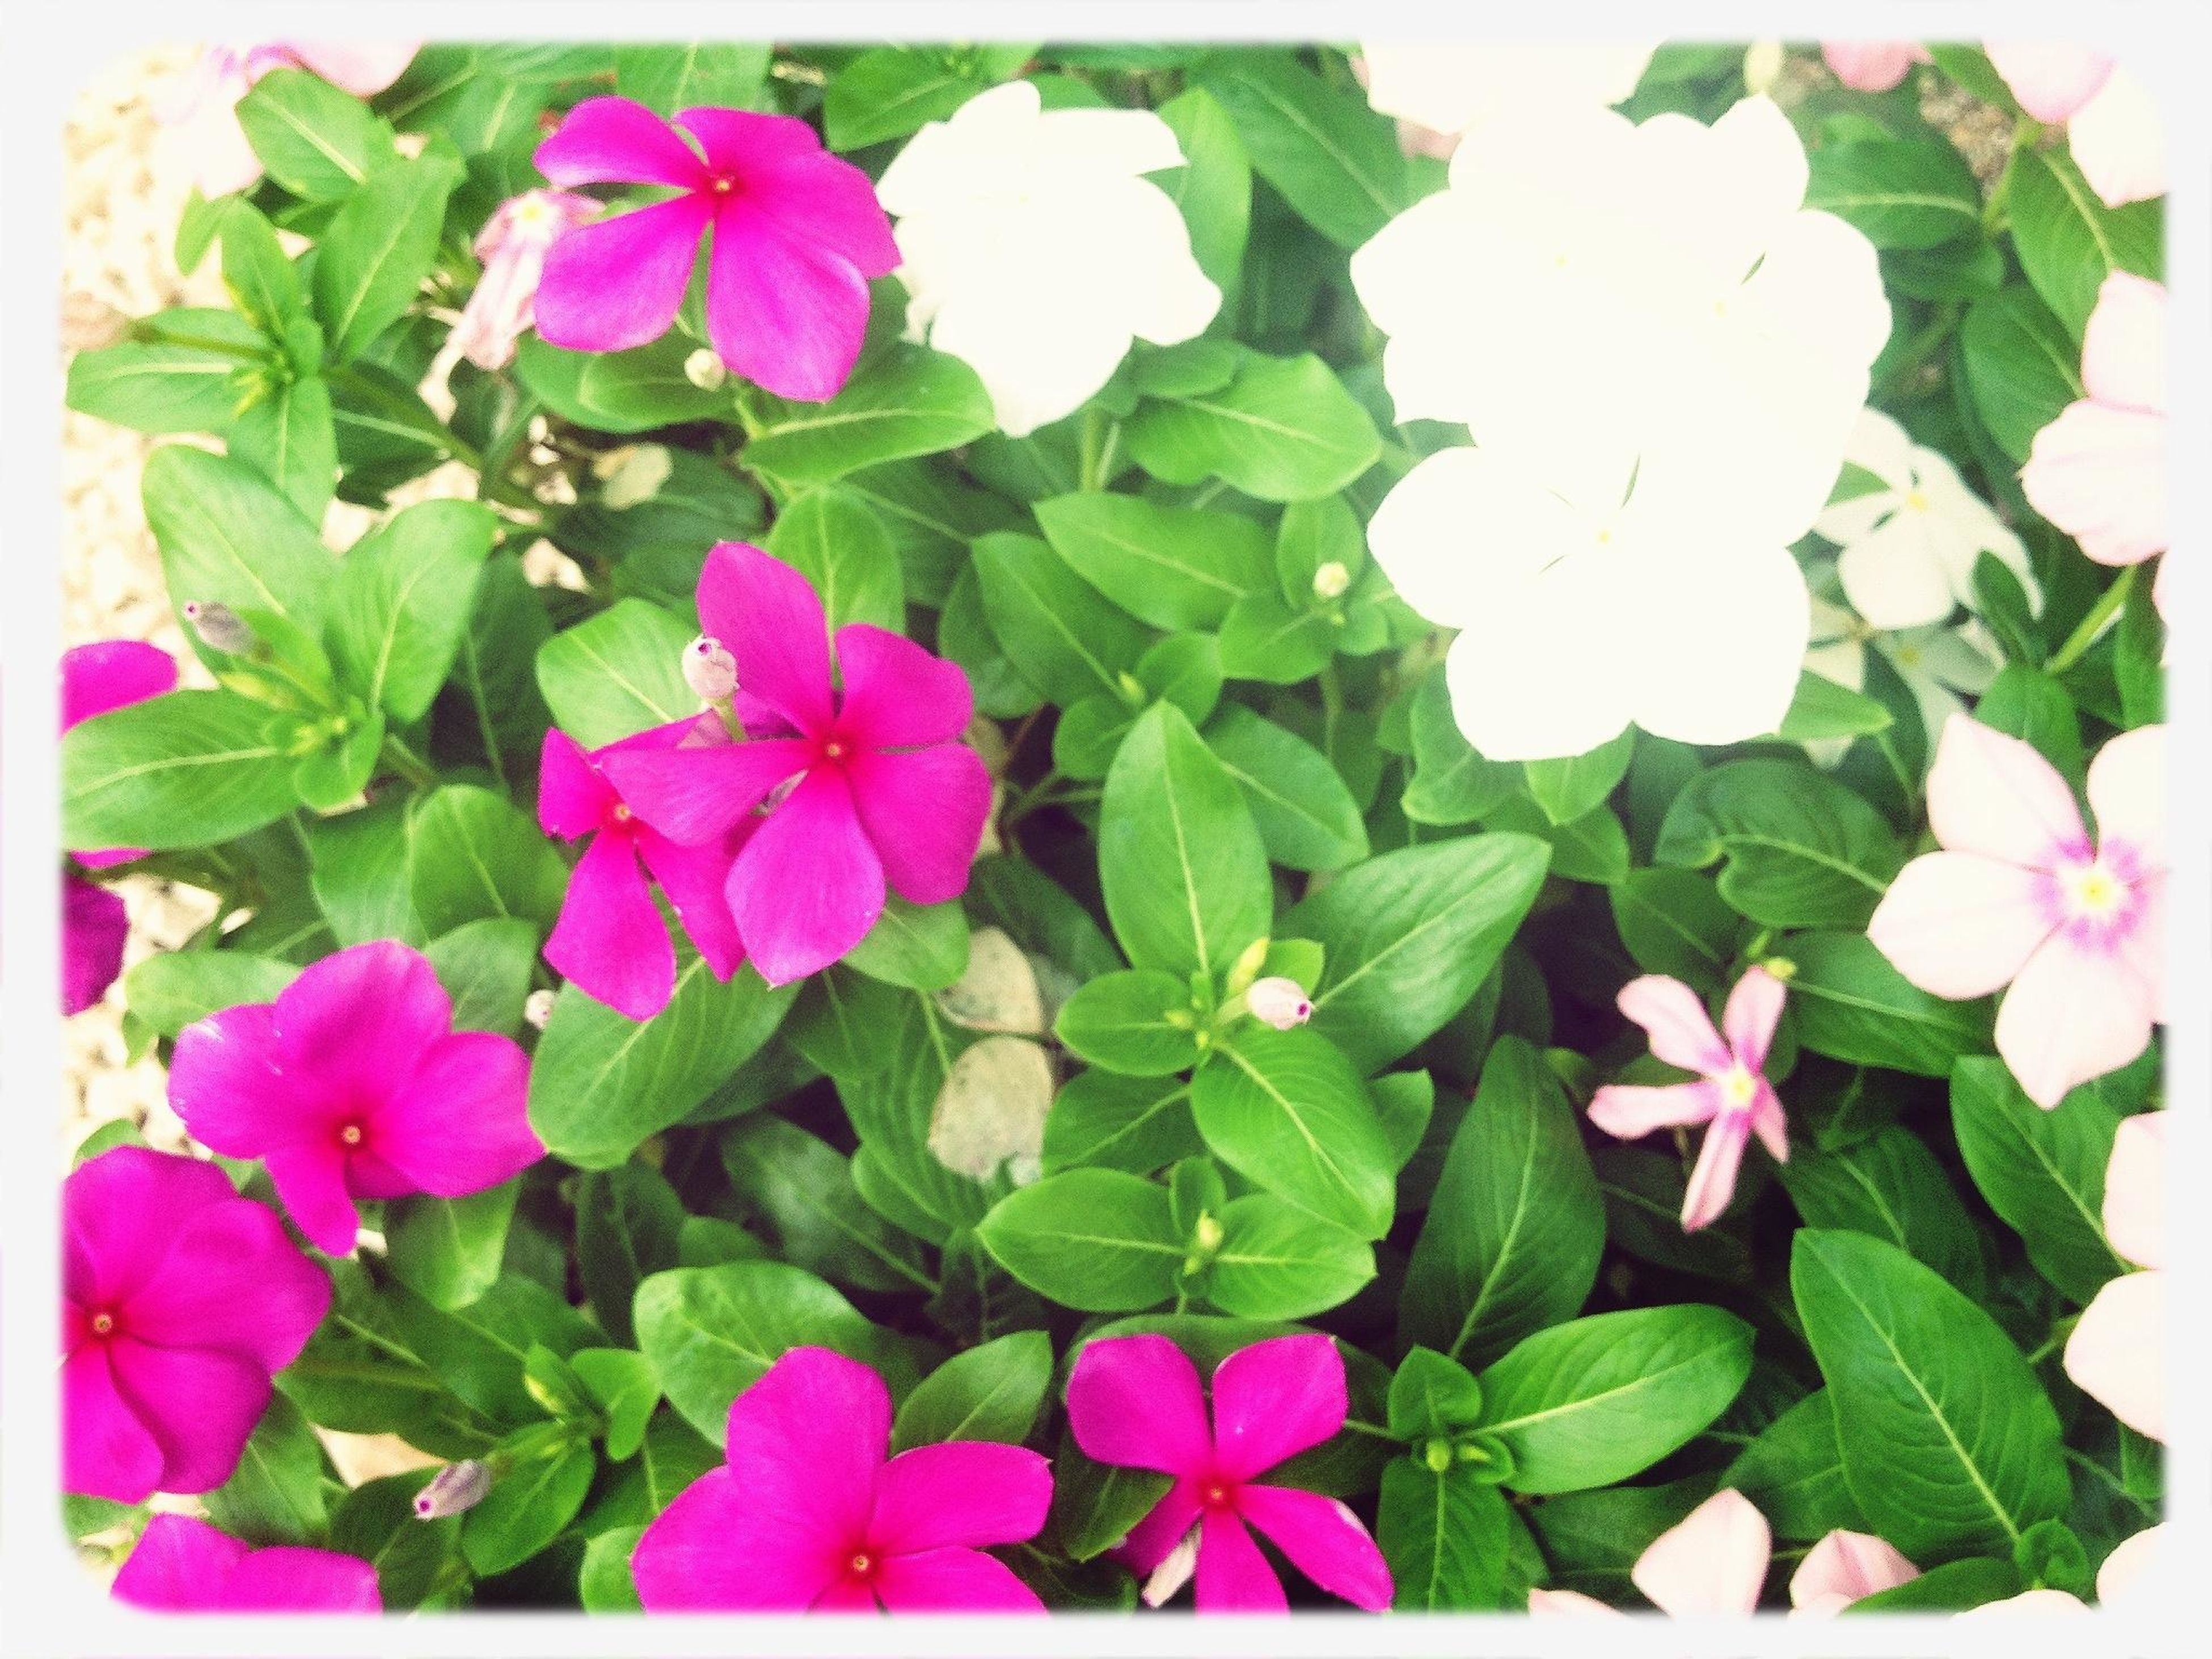 flower, freshness, transfer print, fragility, leaf, petal, growth, beauty in nature, flower head, plant, auto post production filter, nature, high angle view, blooming, pink color, close-up, green color, purple, in bloom, no people